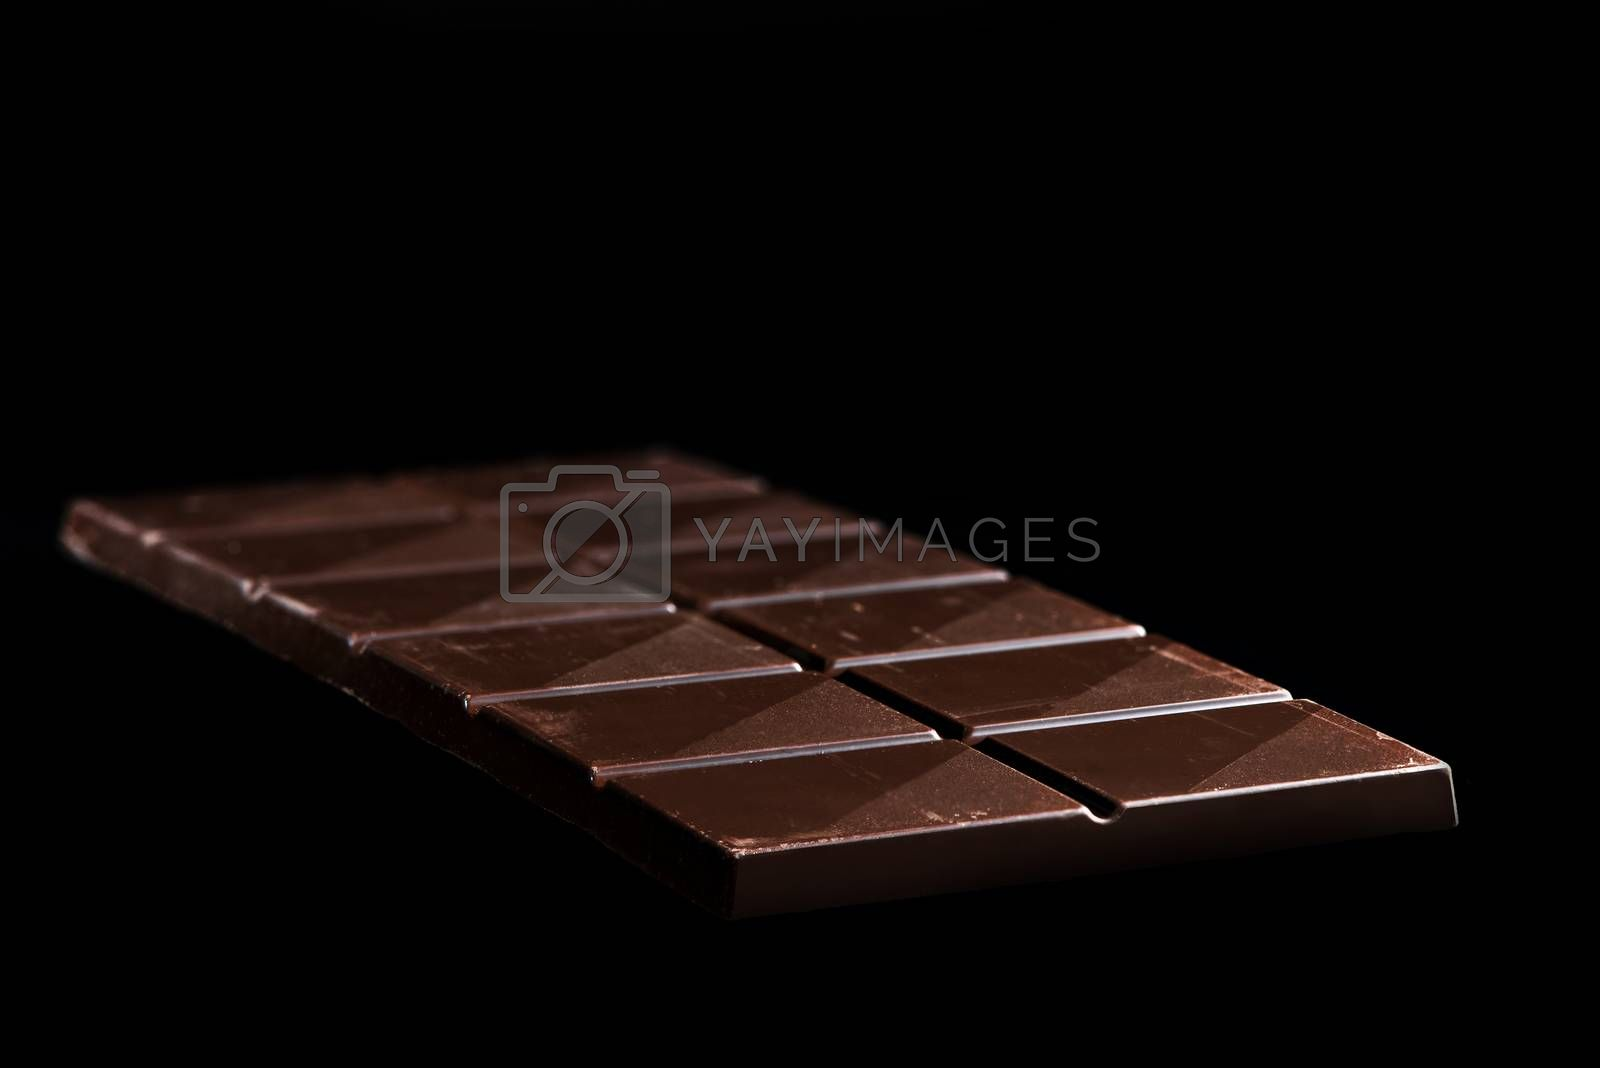 Chocolate Whole Bar on Black Background. Closeup View by merc67